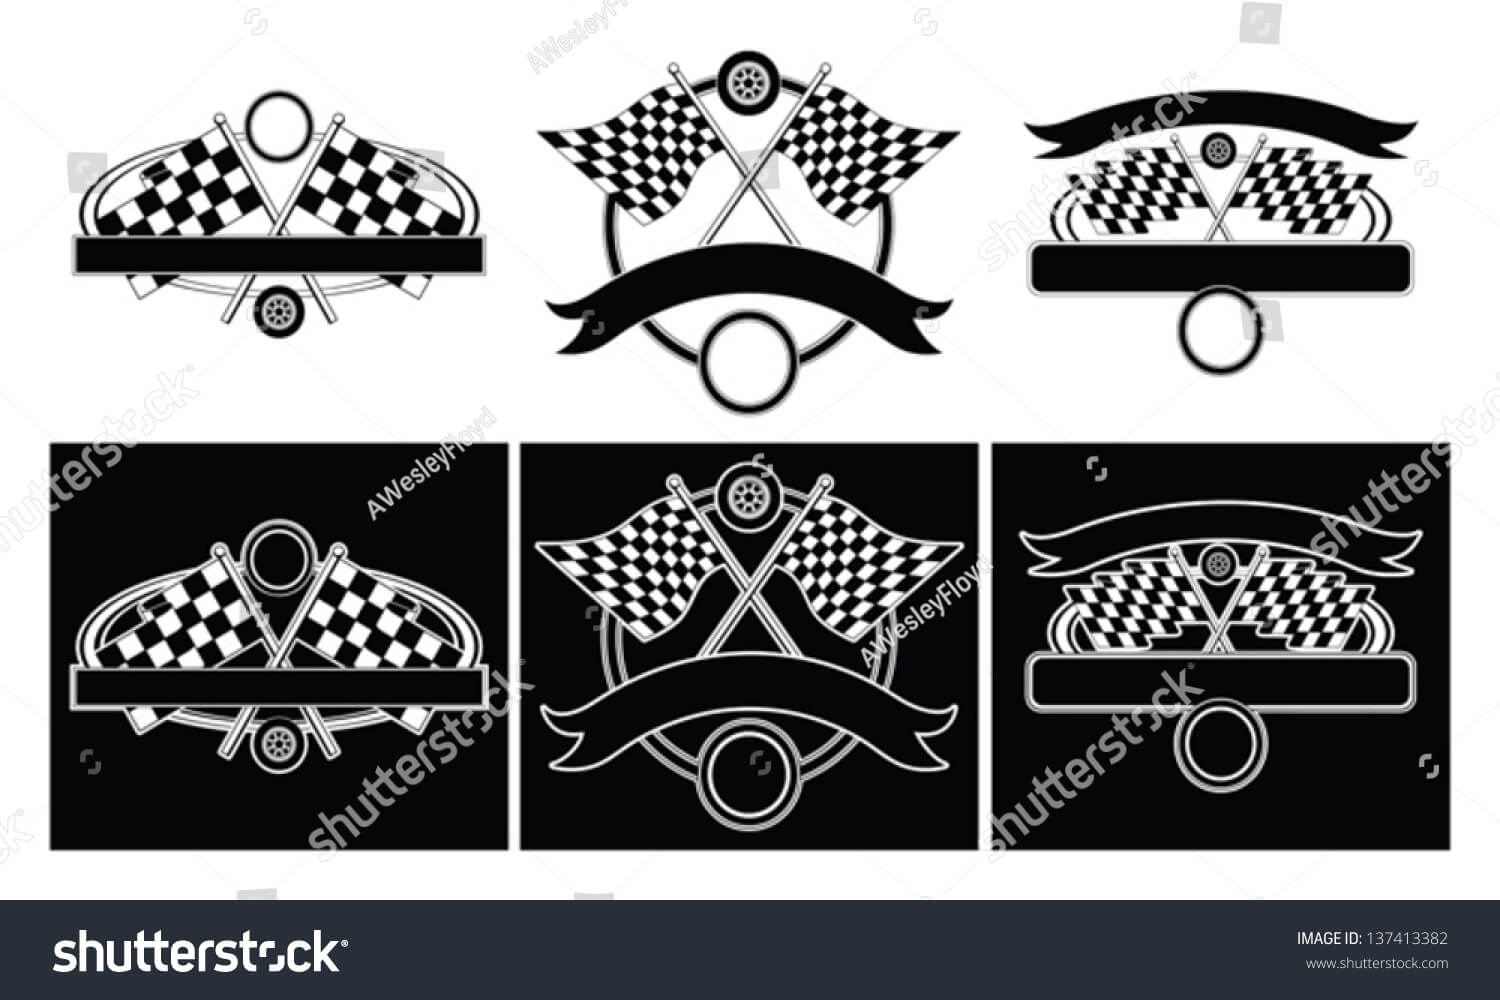 Racing Design Templates Illustration Designs Car Stock Intended For Blank Race Car Templates